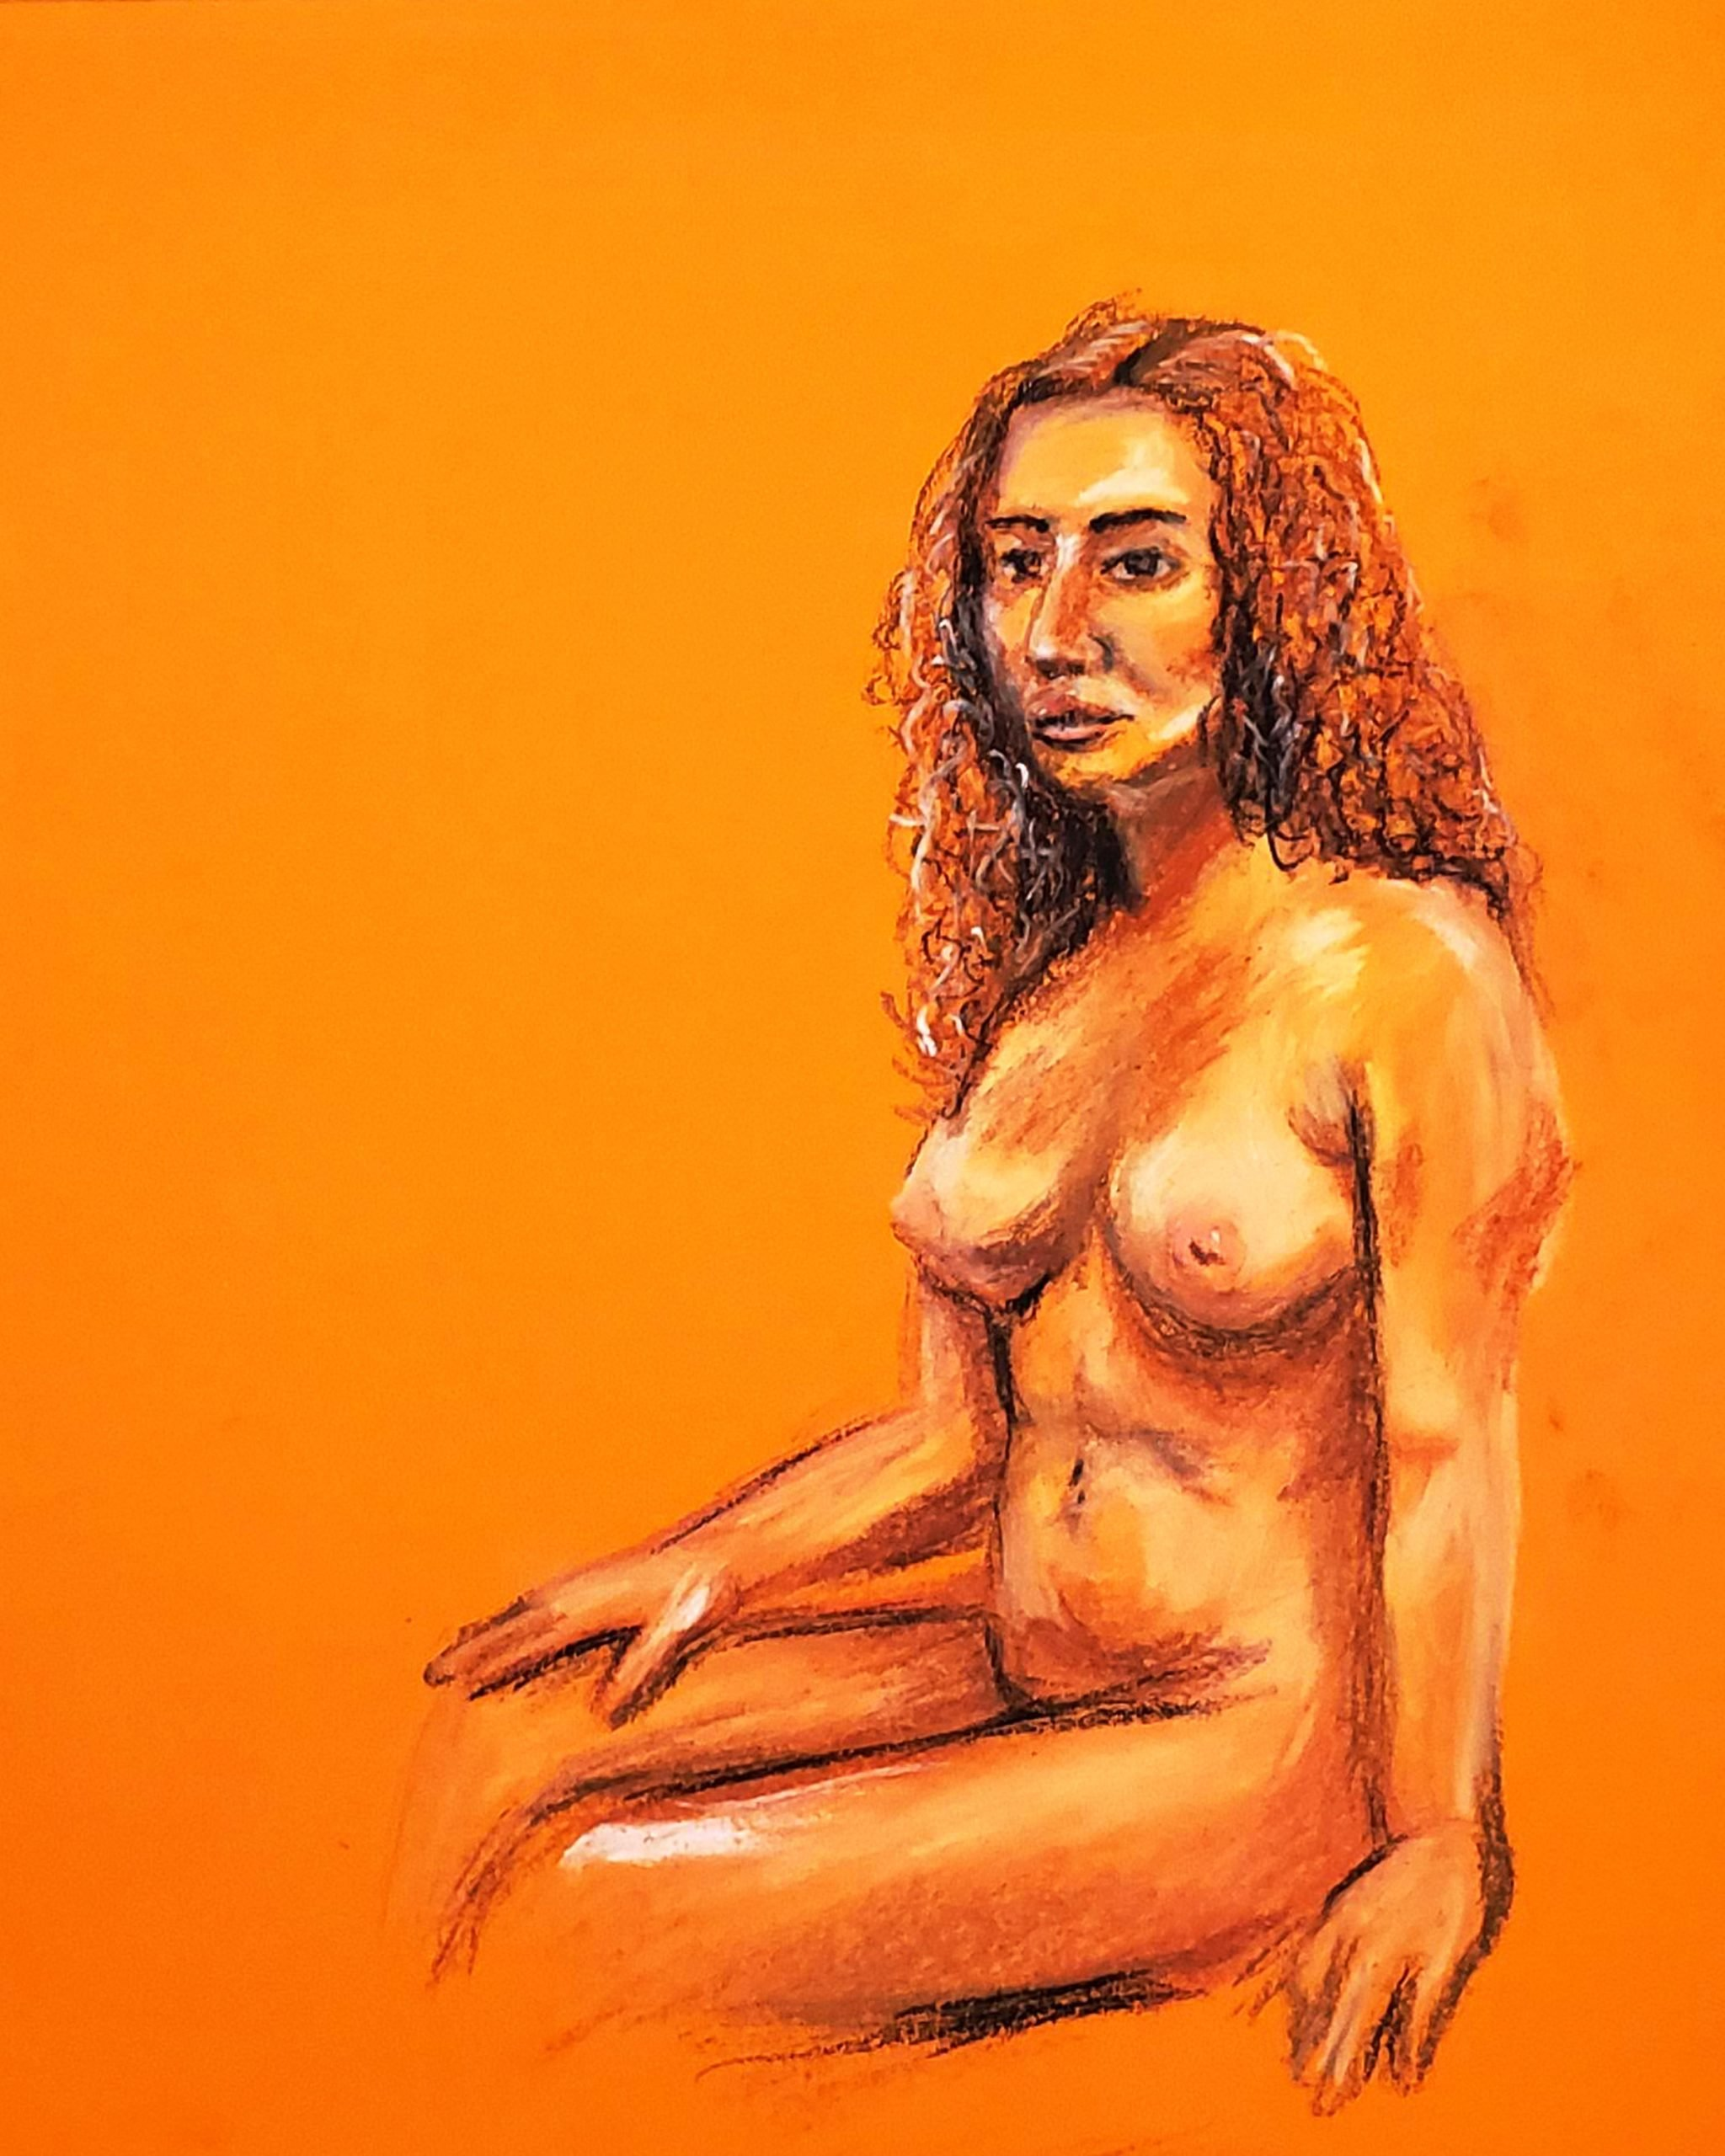 Portrait of Woman Sitting in Orange